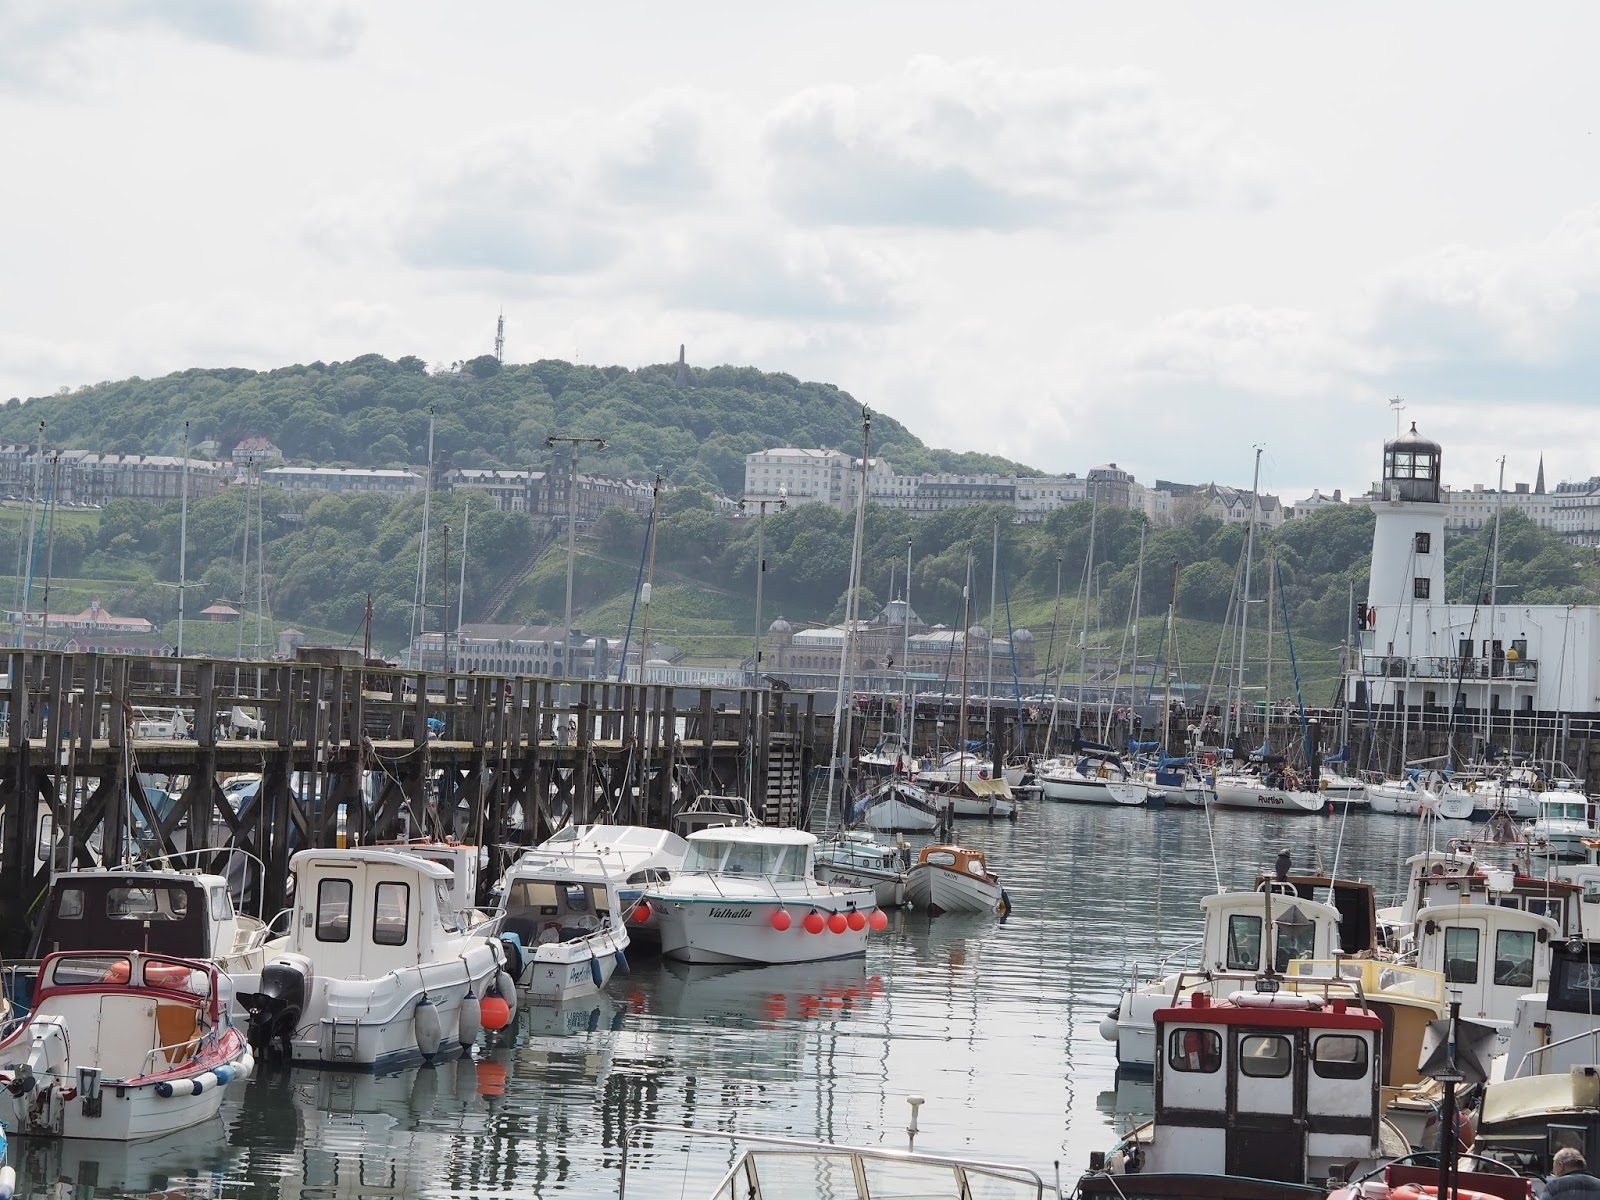 Boats and lighthouse Harbour, South Bay, Scarborough, Yorkshire